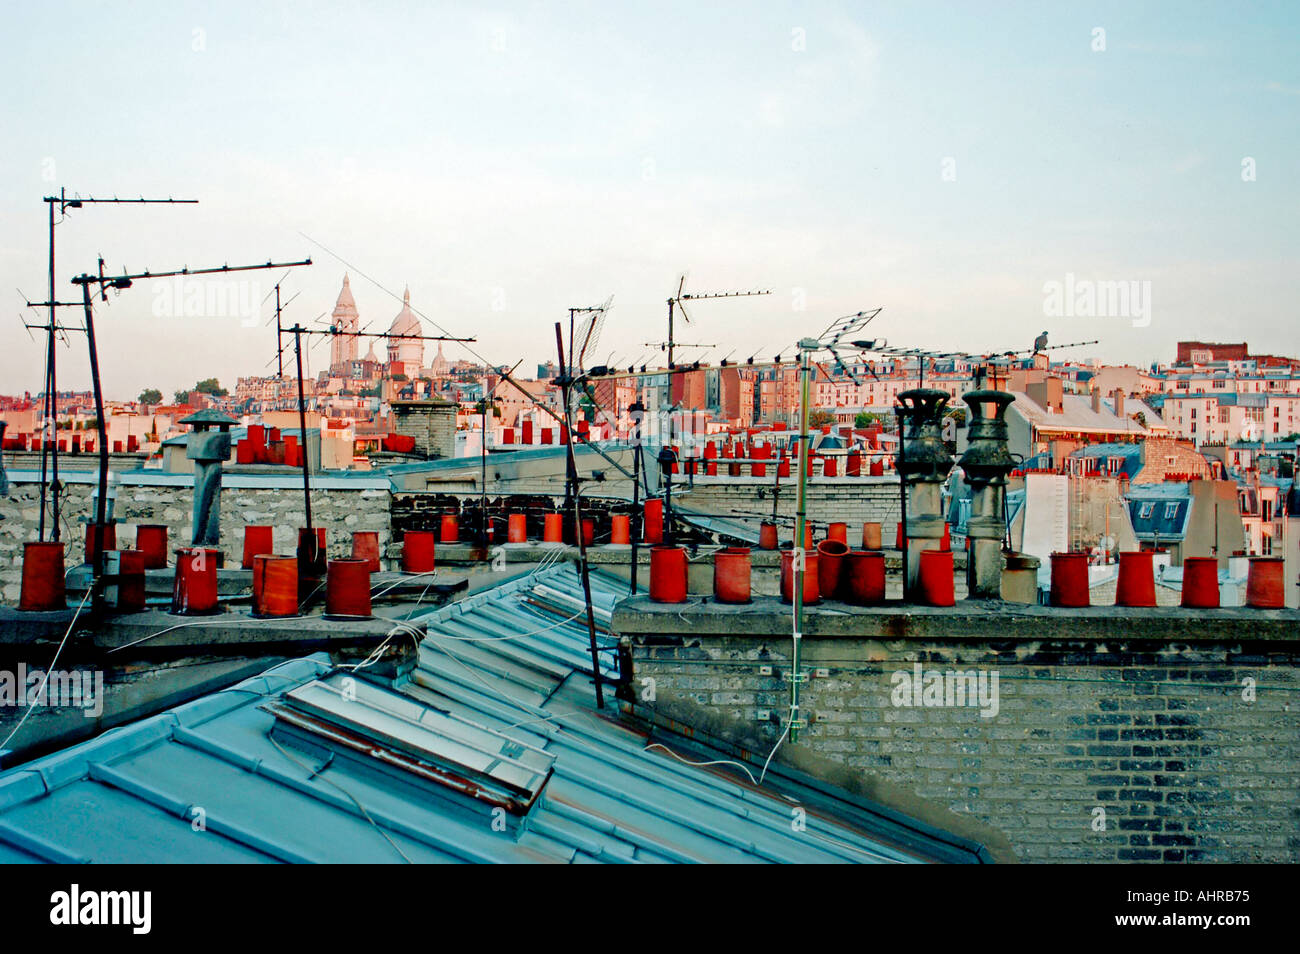 PARIS France, Overview of City, Skyline, Cityscape Looking to 'Sacre Coeur Church' with Parisian Rooftops TV Antennas - Stock Image